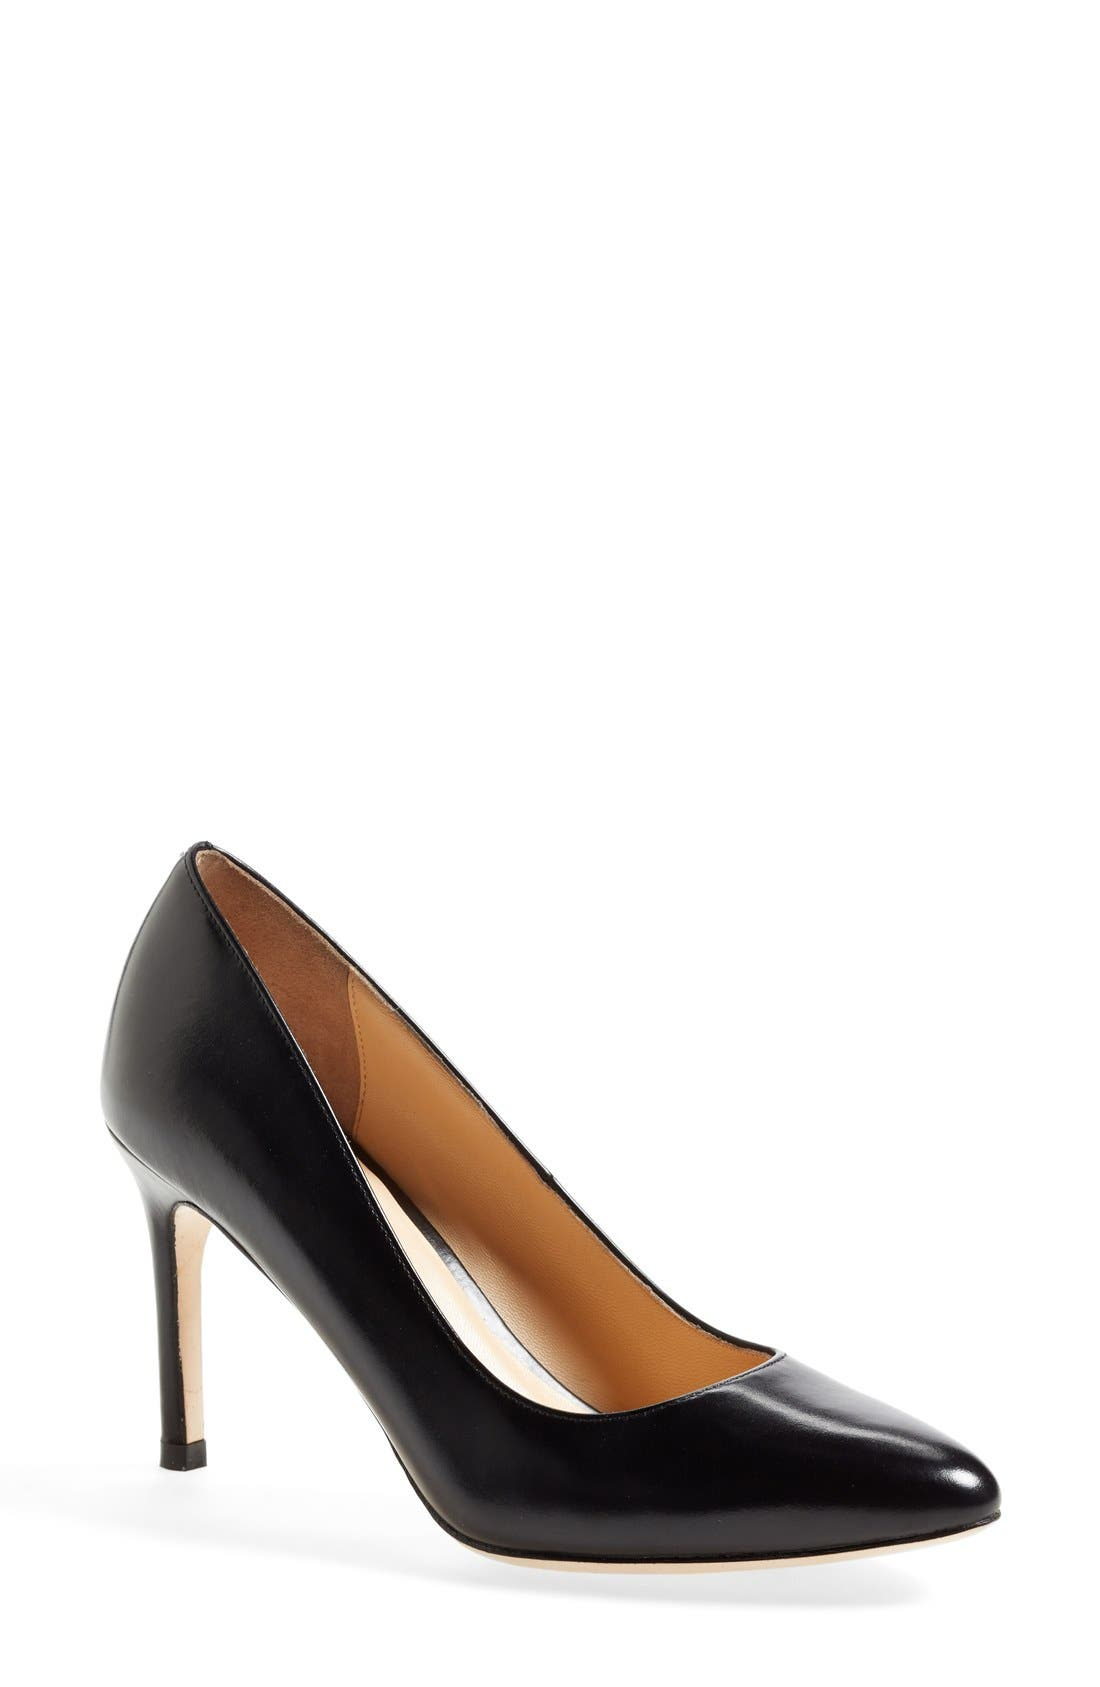 Main Image - Cole Haan 'Bethany' Leather Pump (Women)